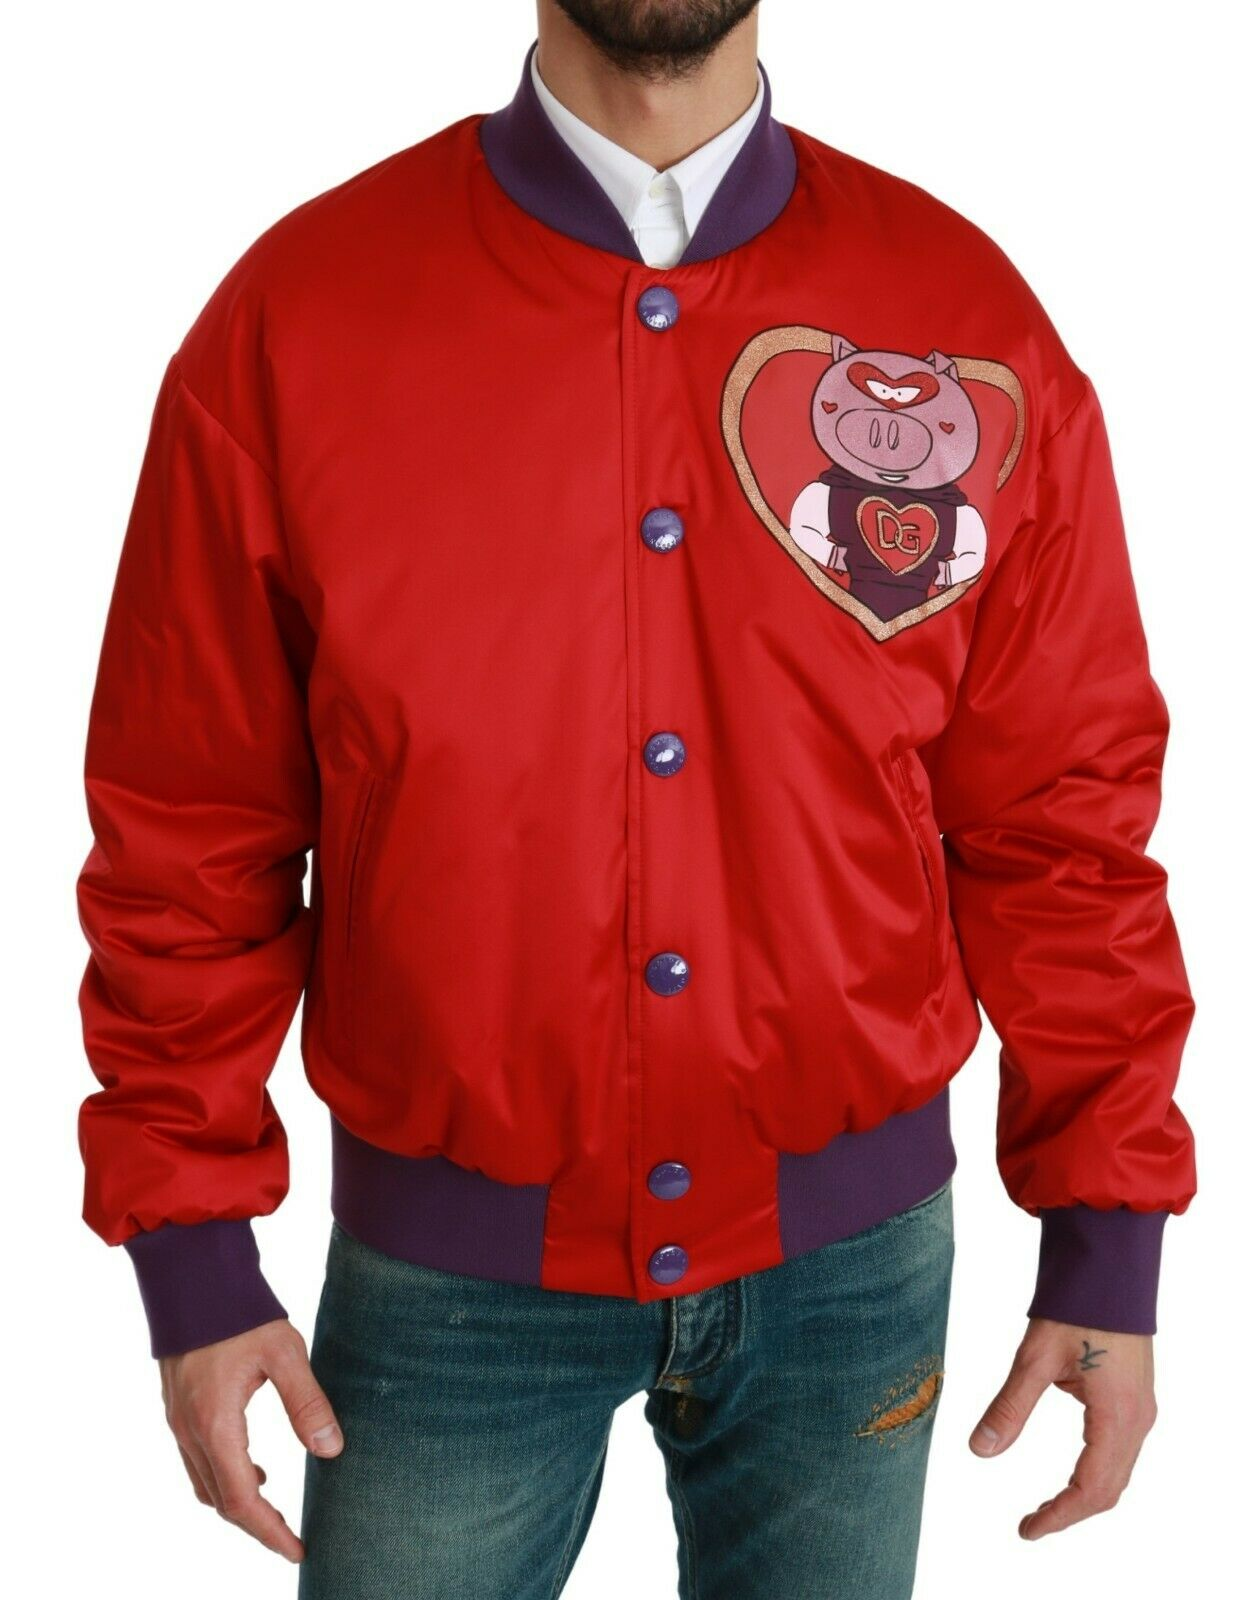 Dolce & Gabbana Men's YEAR OF THE PIG Bomber Jacket Red JKT2610 - IT44   XS